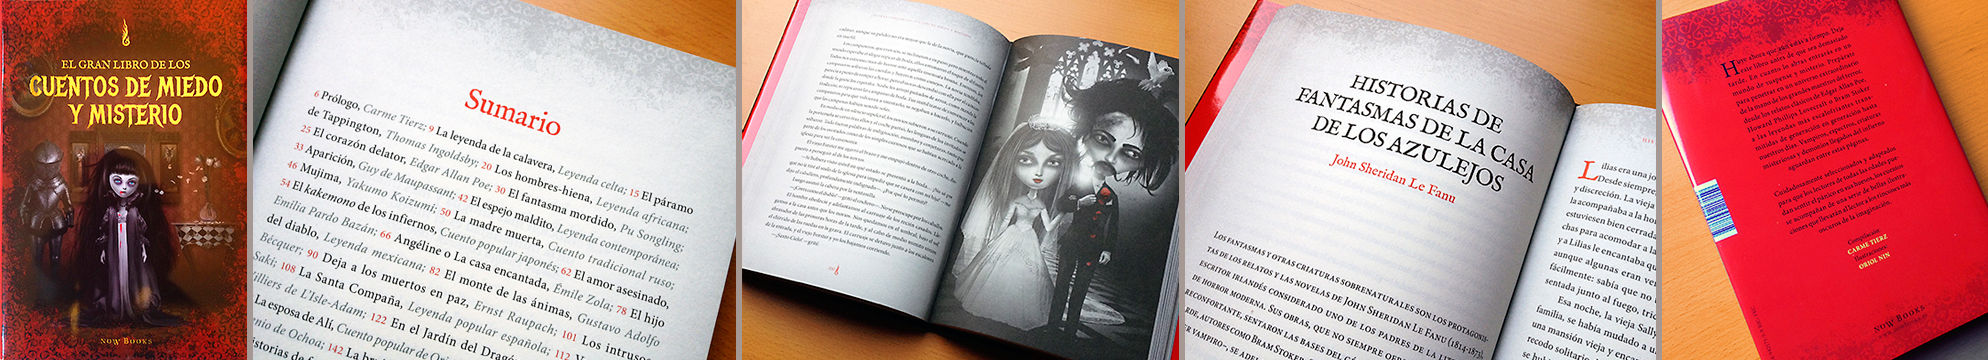 COVER & INSIDE OF THE BOOK (ORIOL NIN: illustrations)<br/>NOW BOOKS - ARA LLIBRES